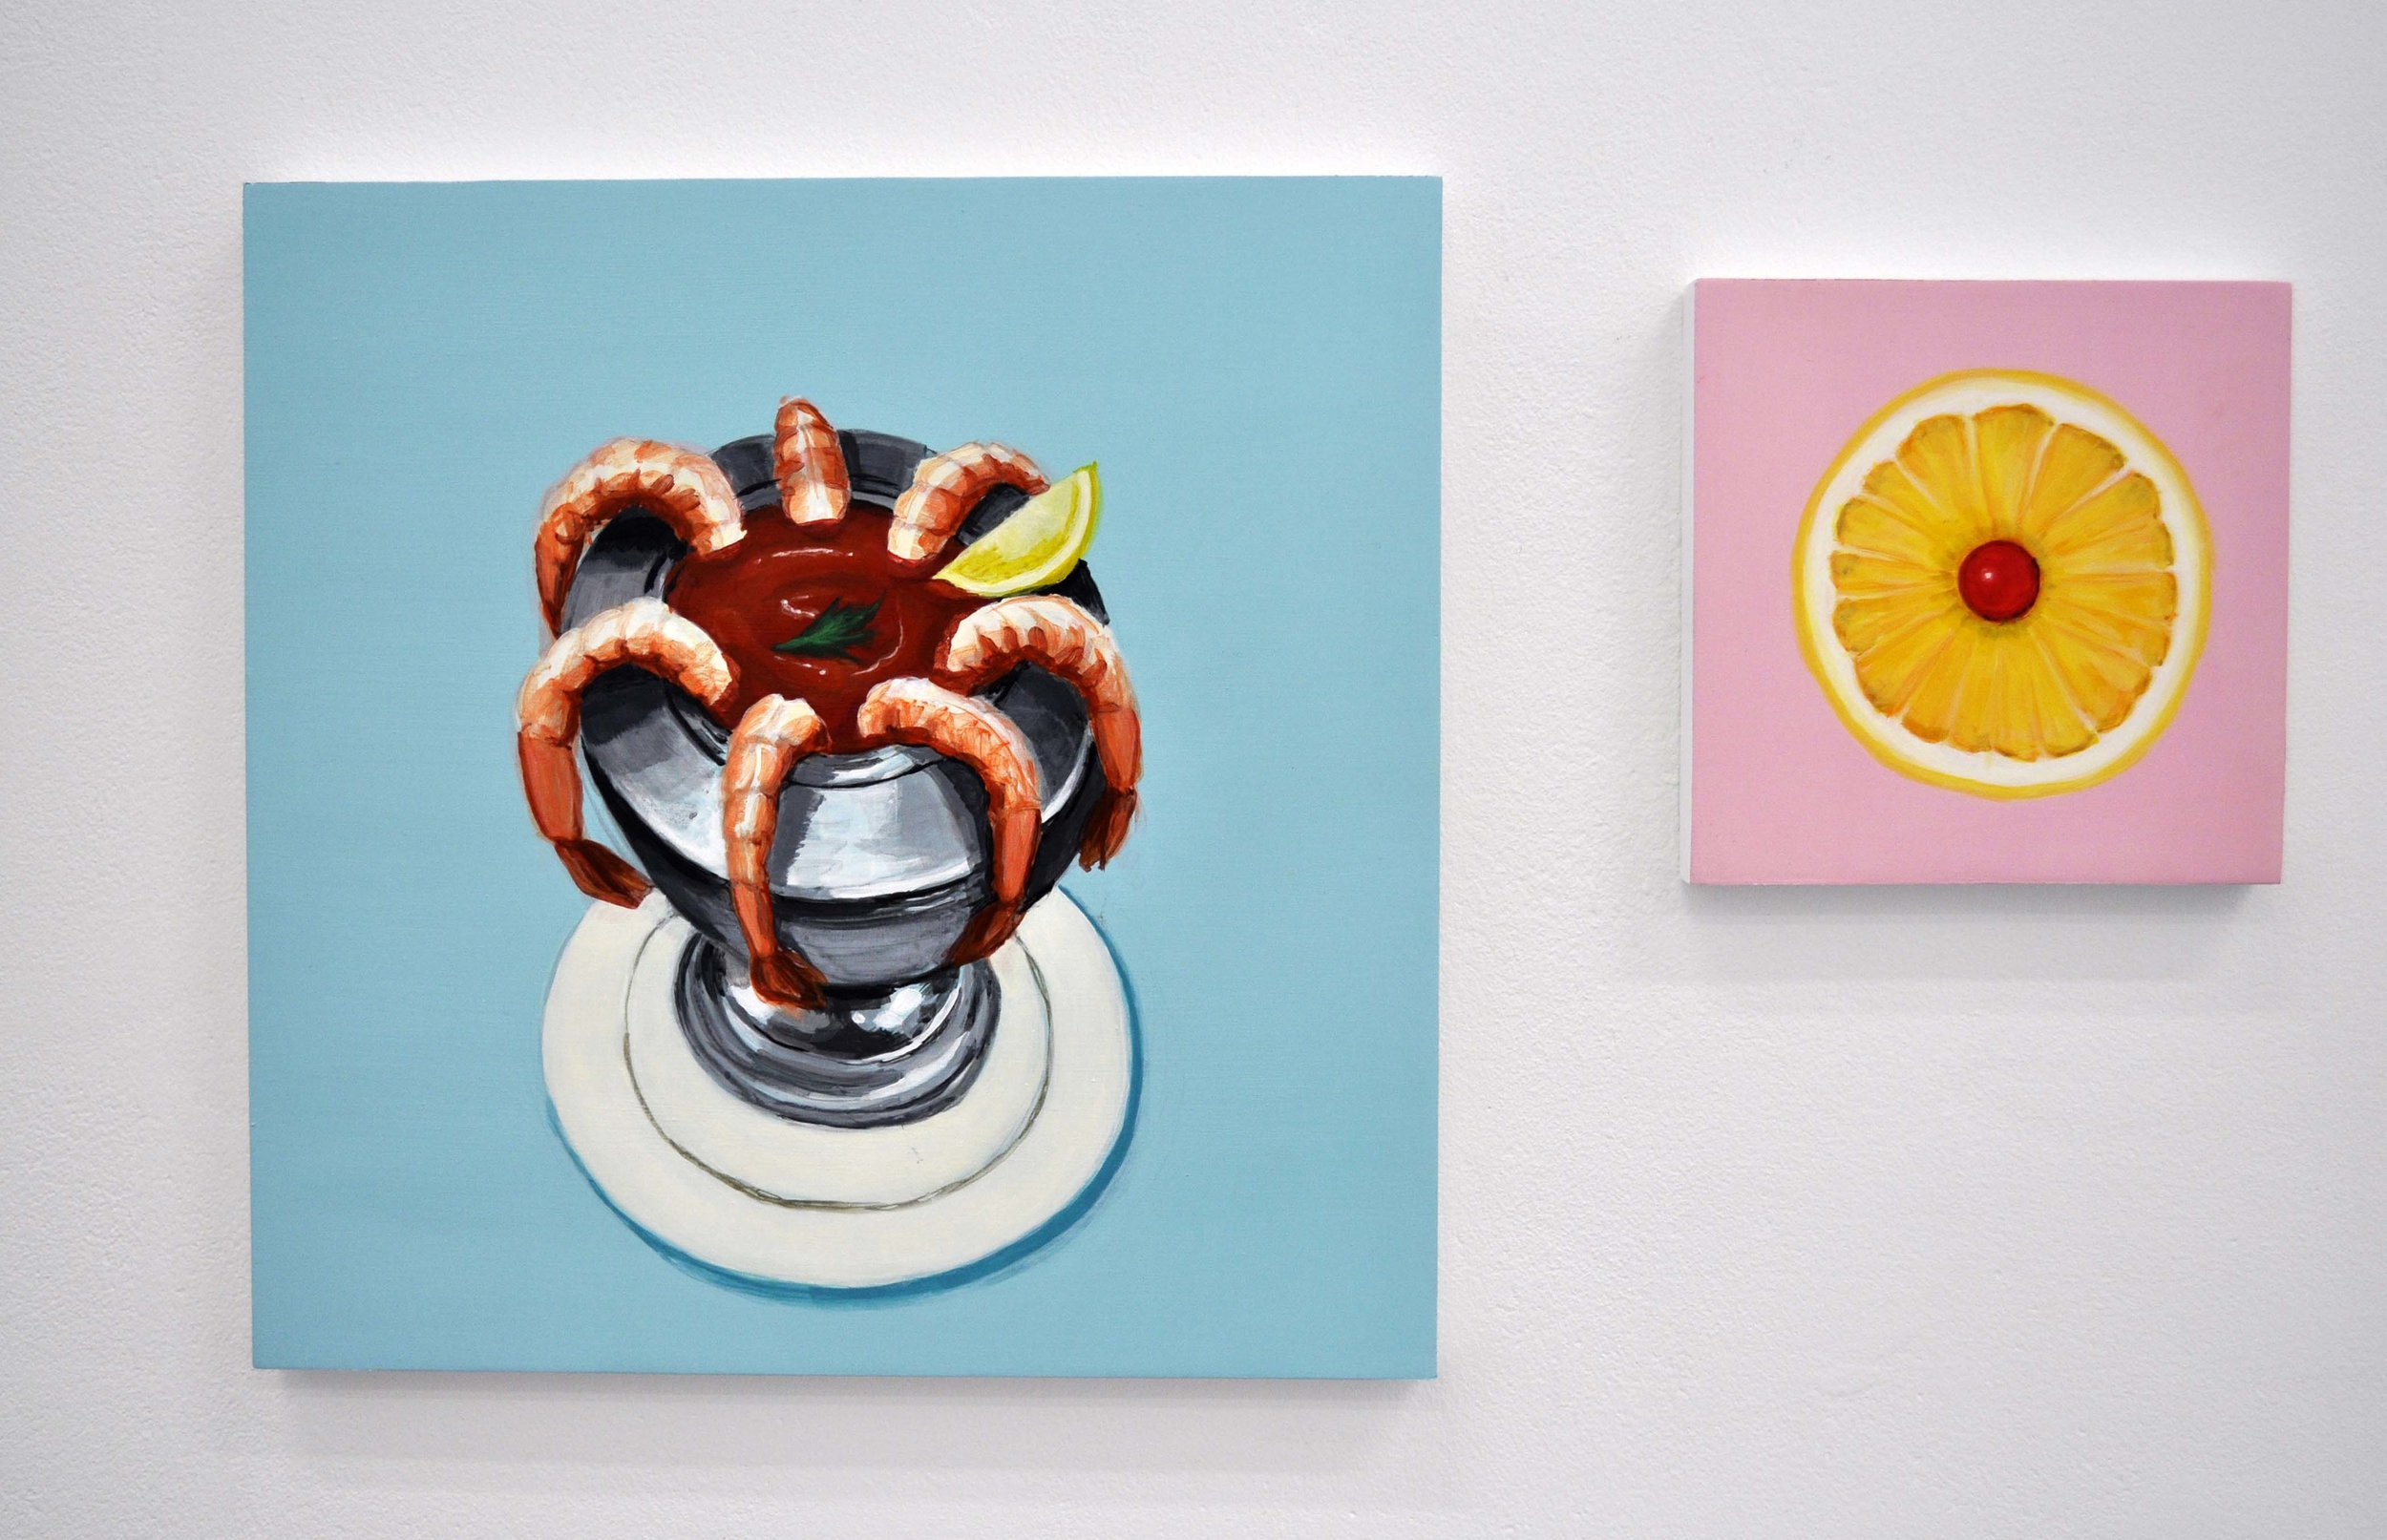 Left: Shrimp Cocktail  Right: Grapefruit Half From the series Some American Food 2013 Acrylic on birch ply, 12 x 12 in and 6 x 6 in